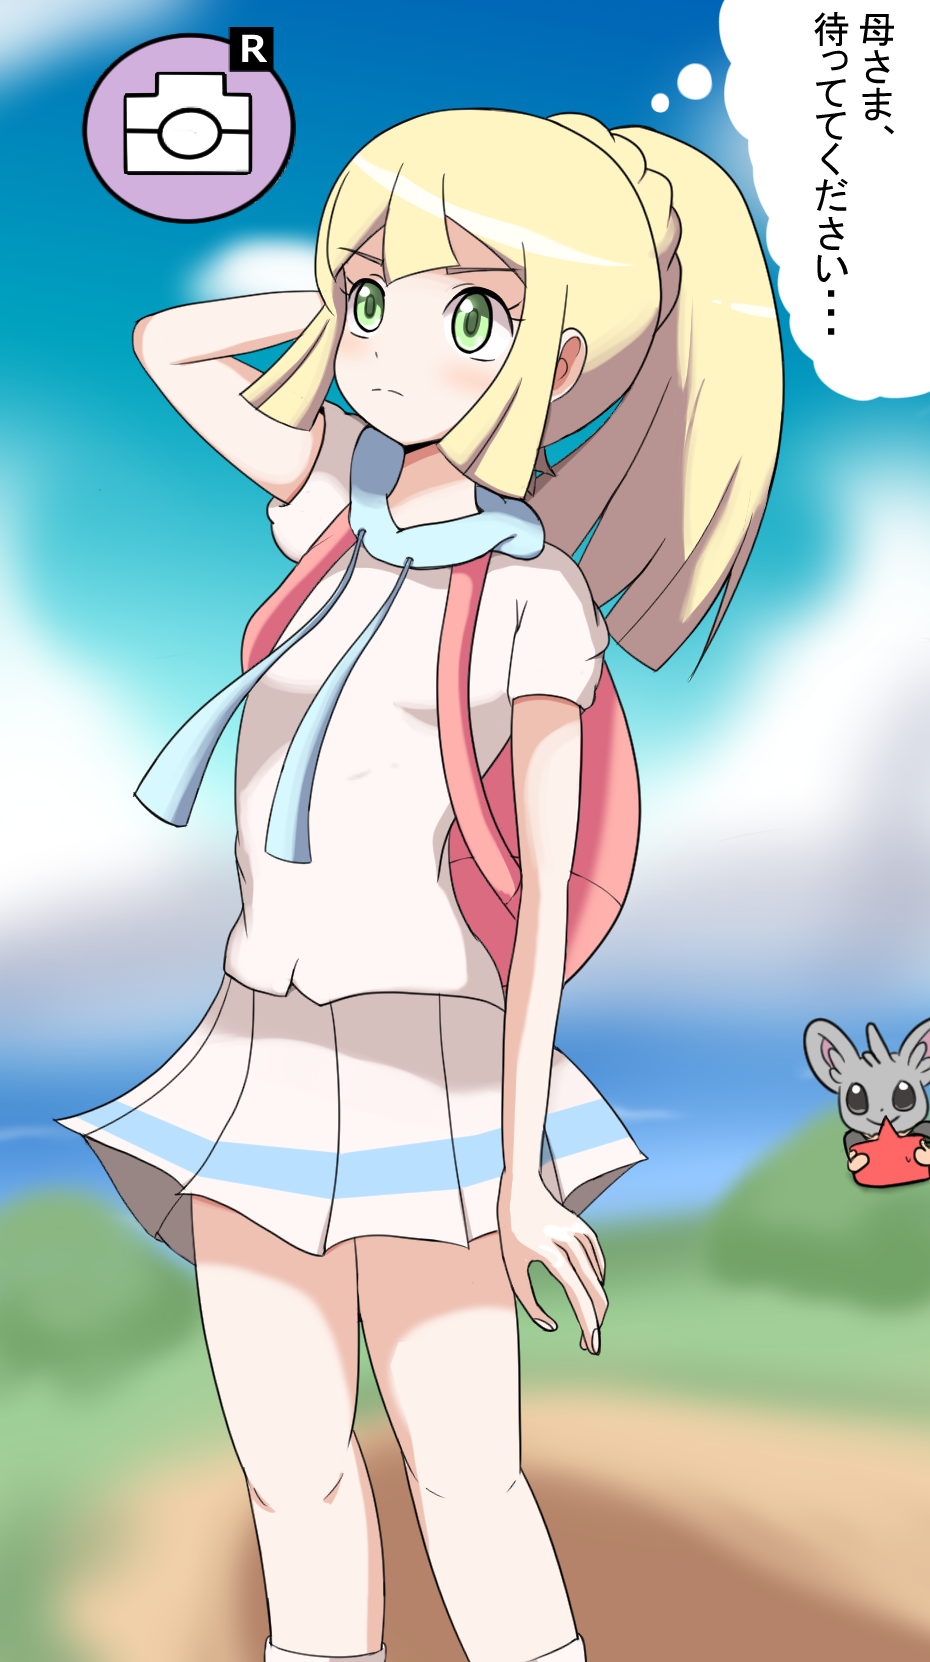 1girl arm_behind_head arm_up backpack bag blonde_hair blue_sky blush braid cloud female french_braid gameplay_mechanics gen_4_pokemon gen_5_pokemon green_eyes highres japanese_text kaimu_(qewcon) lillie_(pokemon) looking_up minccino outdoors pleated_skirt pokemon pokemon_(creature) pokemon_(game) pokemon_sm ponytail rotom rotom_dex shiny shiny_hair shirt short_sleeves skirt sky socks solo_focus standing text_focus thought_bubble tied_hair translated white_legwear white_shirt white_skirt